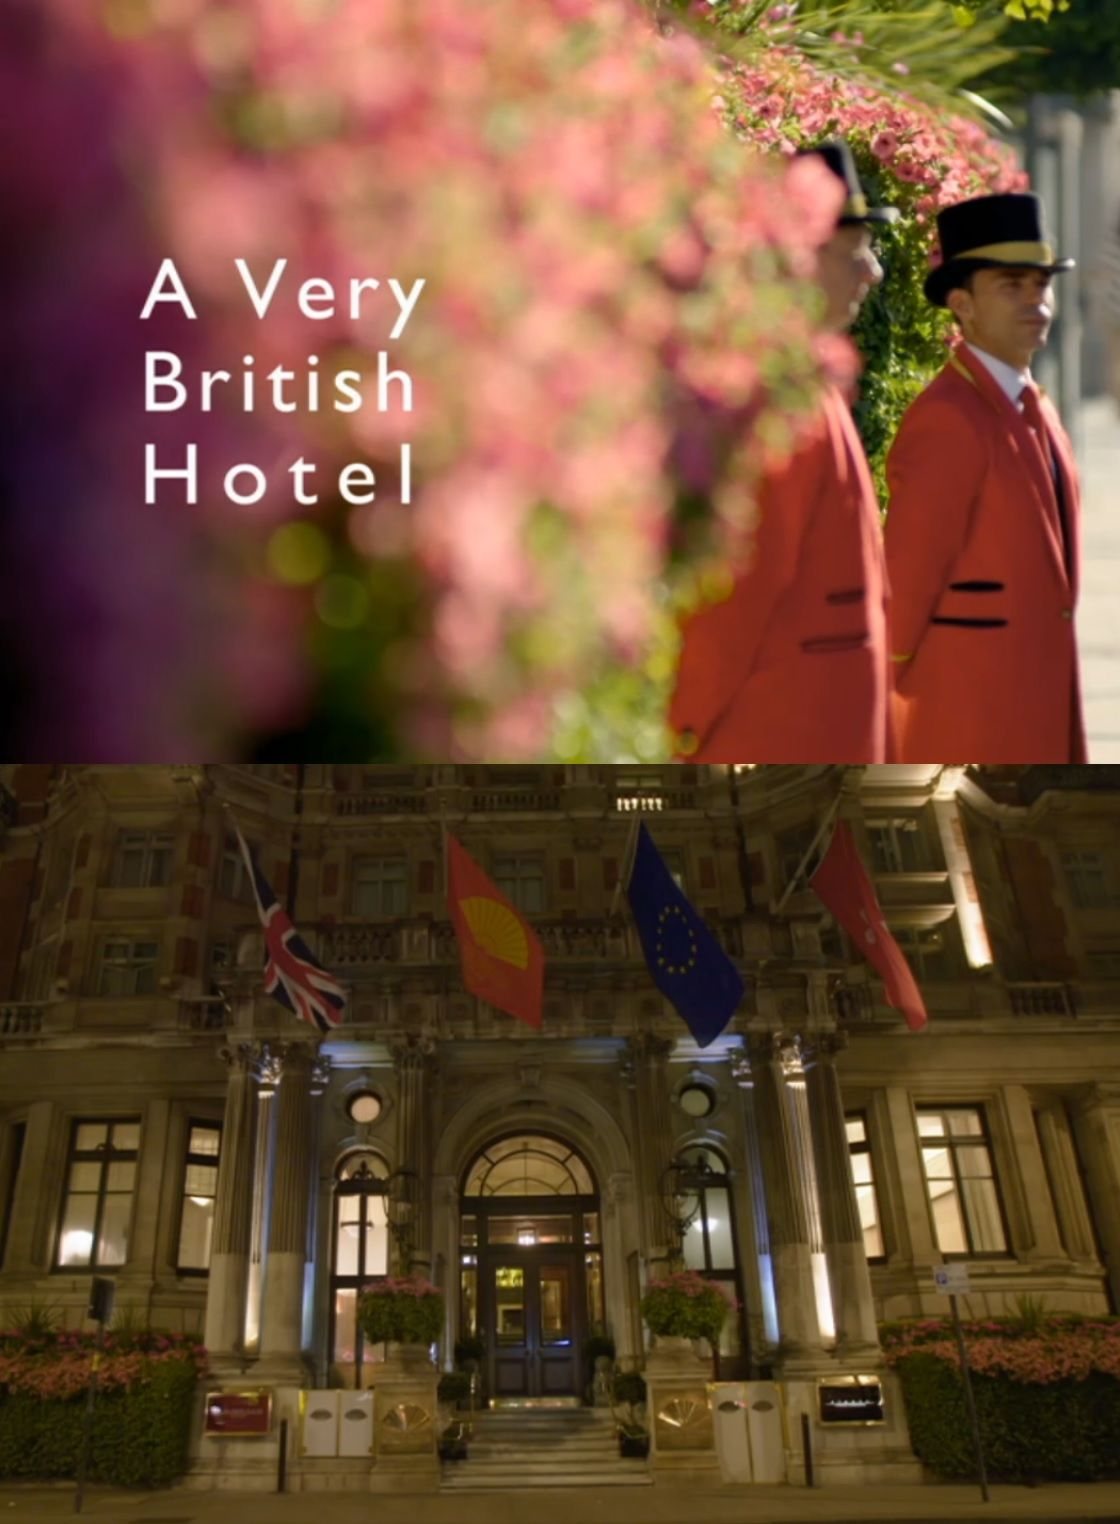 A Very British Hotel cover